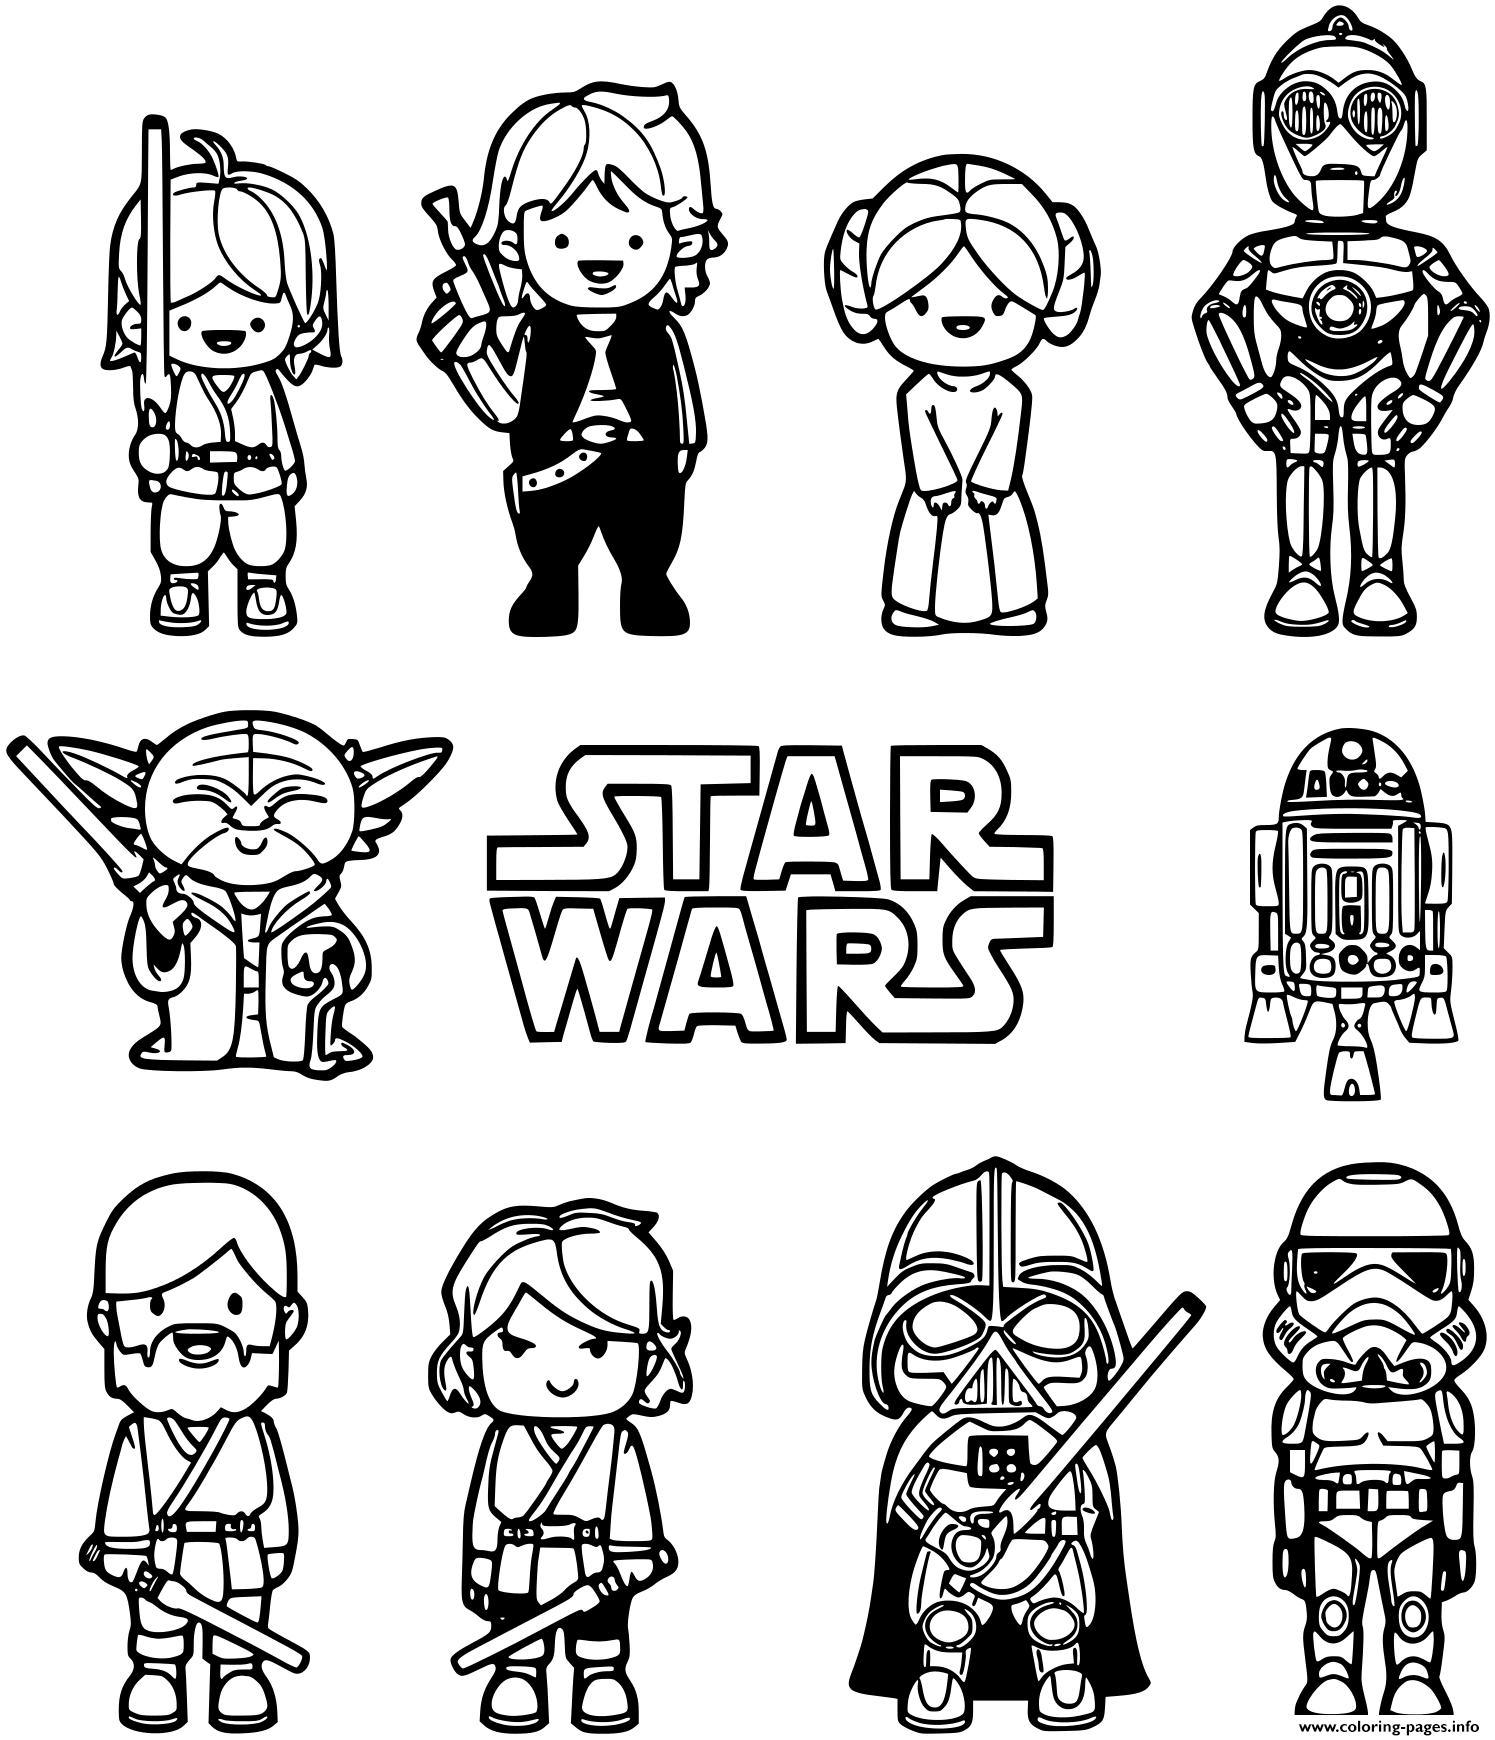 lego star wars printable coloring pages lego star wars coloring pages to download and print for free printable coloring pages wars star lego